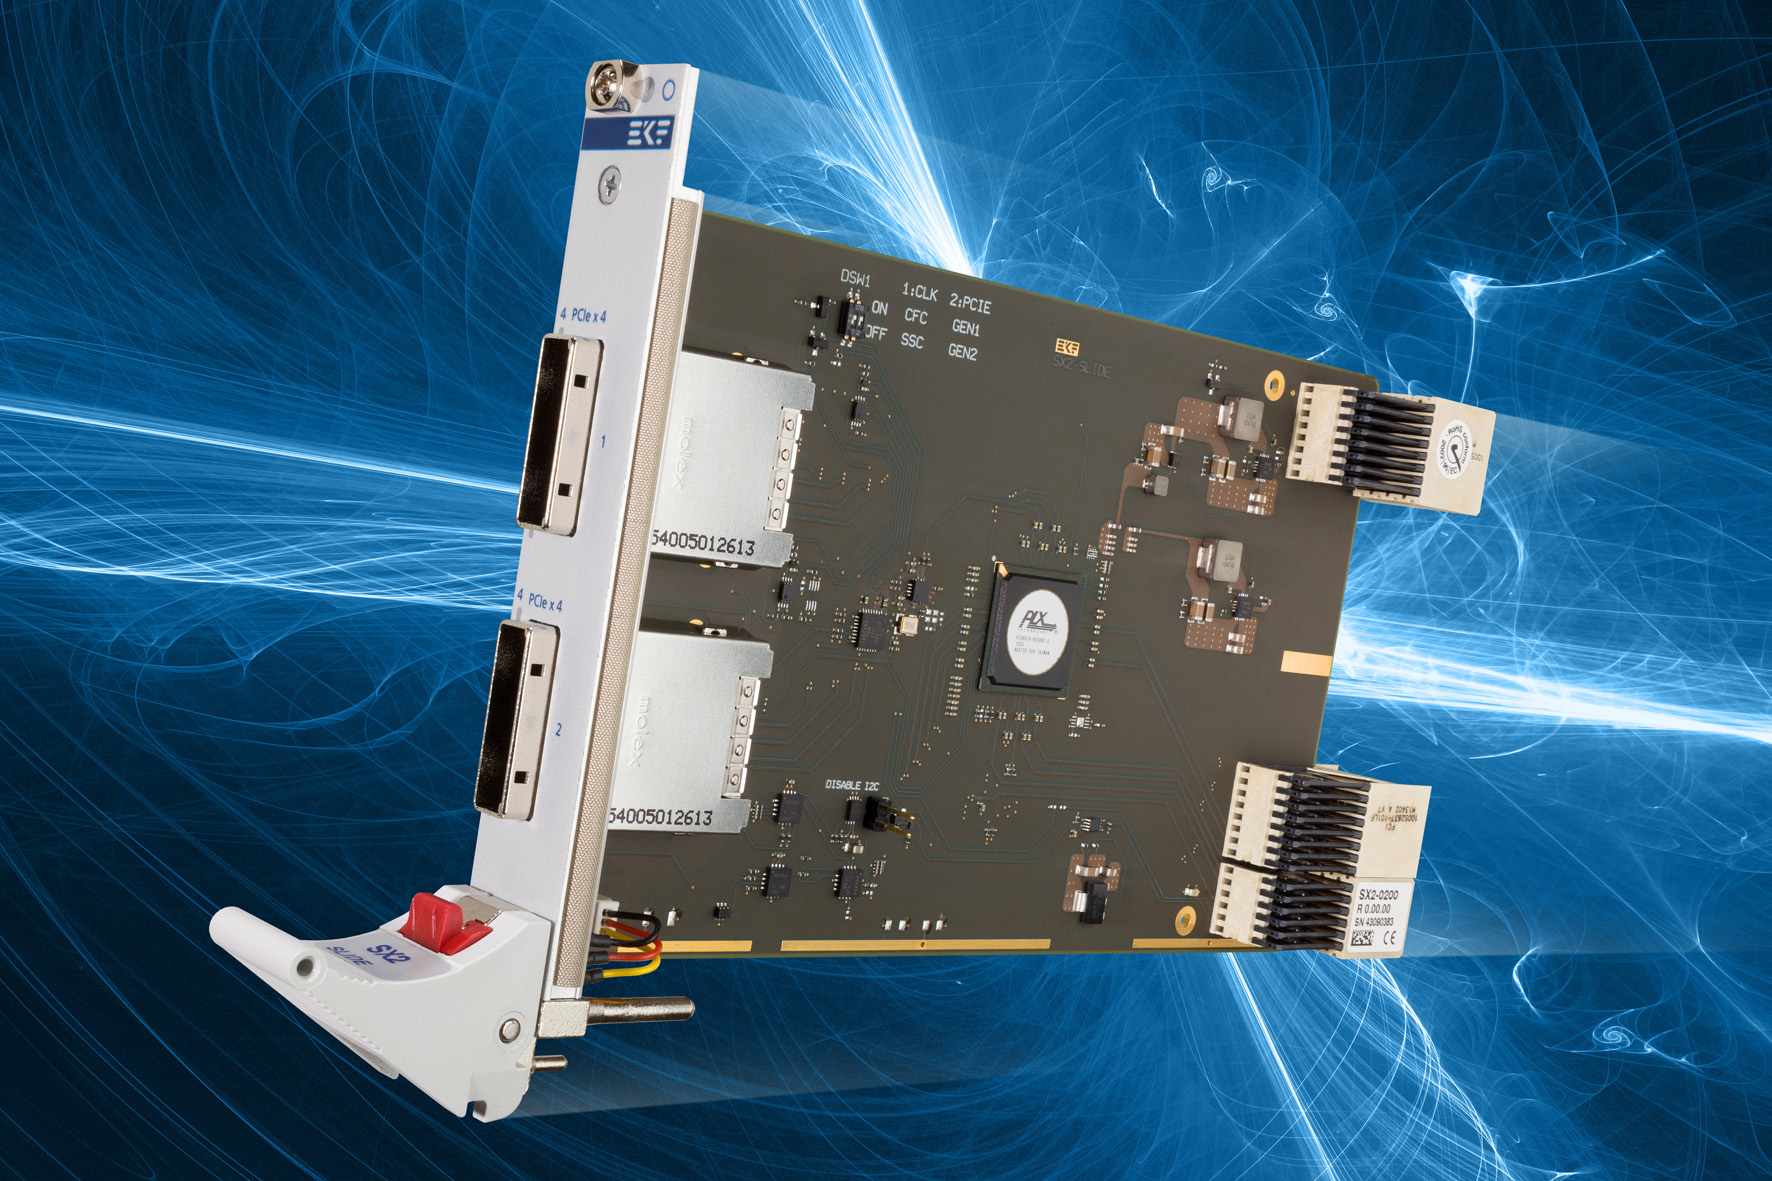 Ekf Compactpci Serial Products Sx2 Slide Pci Express External Connector Pinout For Compact Peripheral Component Interconnect 1